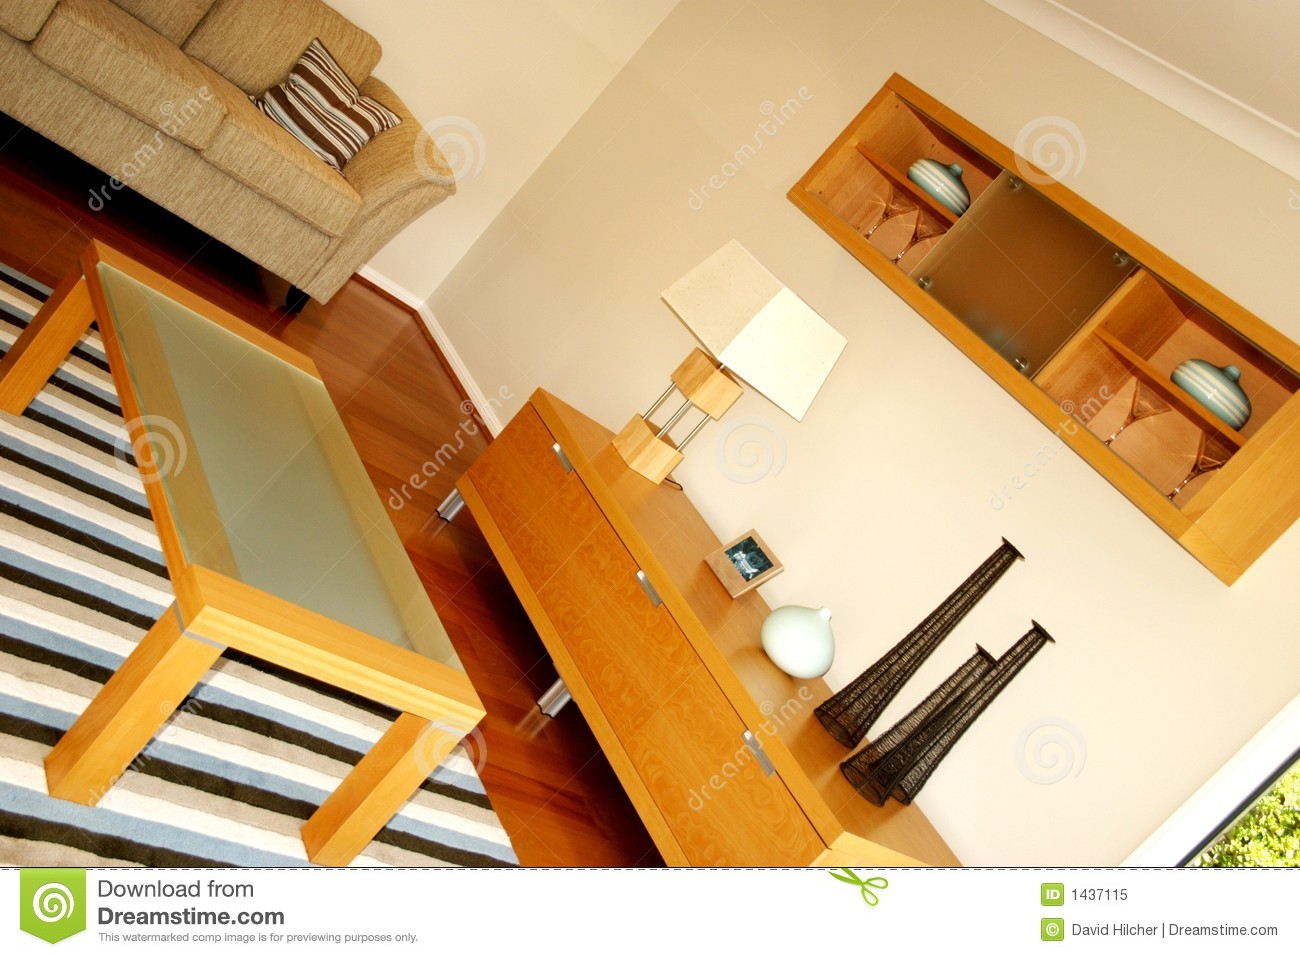 Feng shui royalty free stock photo image 1437115 for Feng shui for building new house